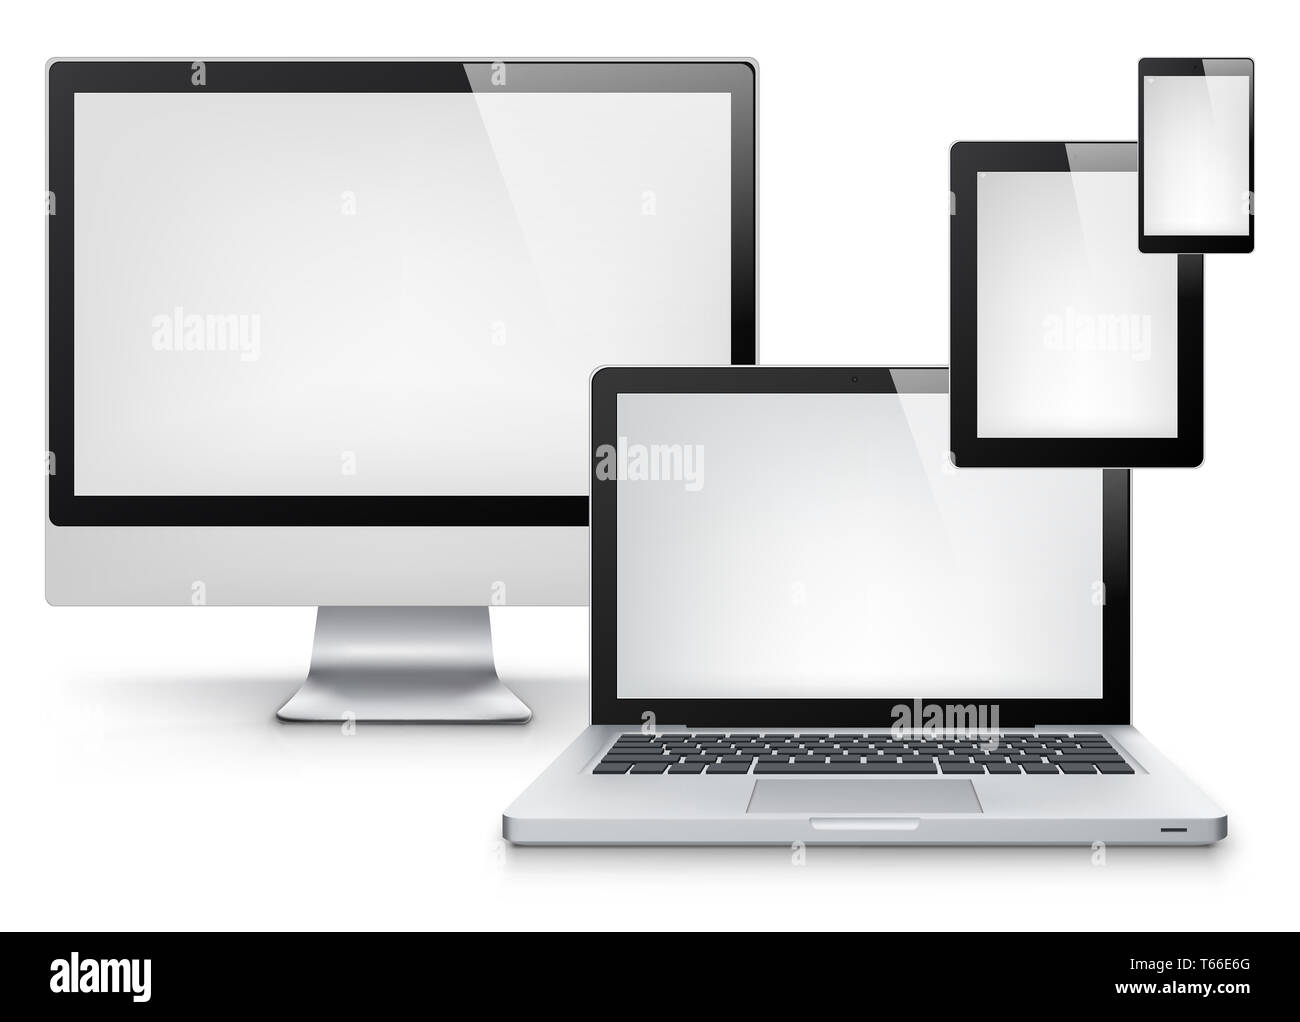 Computers - Stock Image